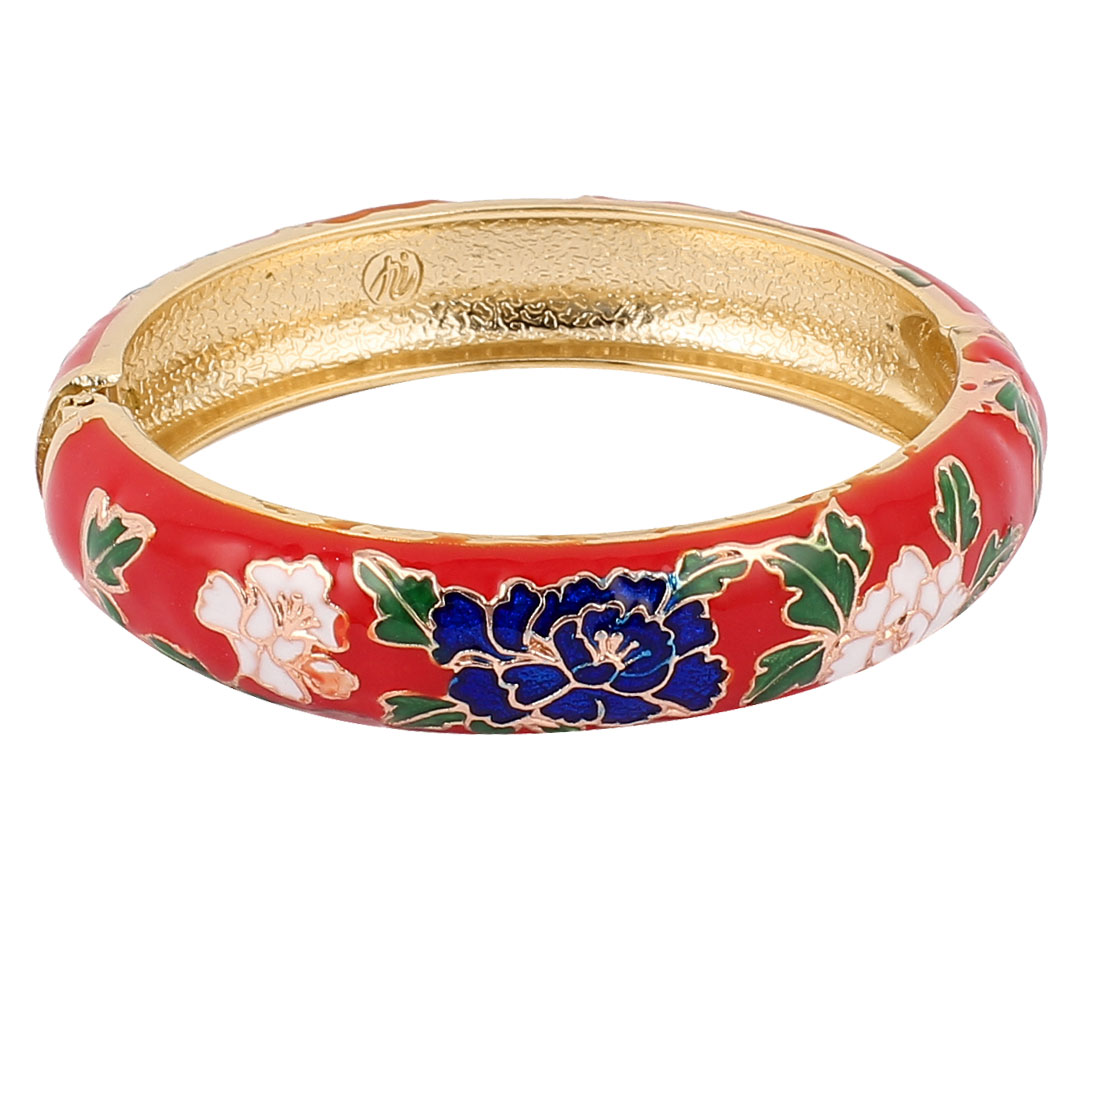 Women Floral Gold Plated Wide Enamel Bangle Jewelry Bracelet Gift Red